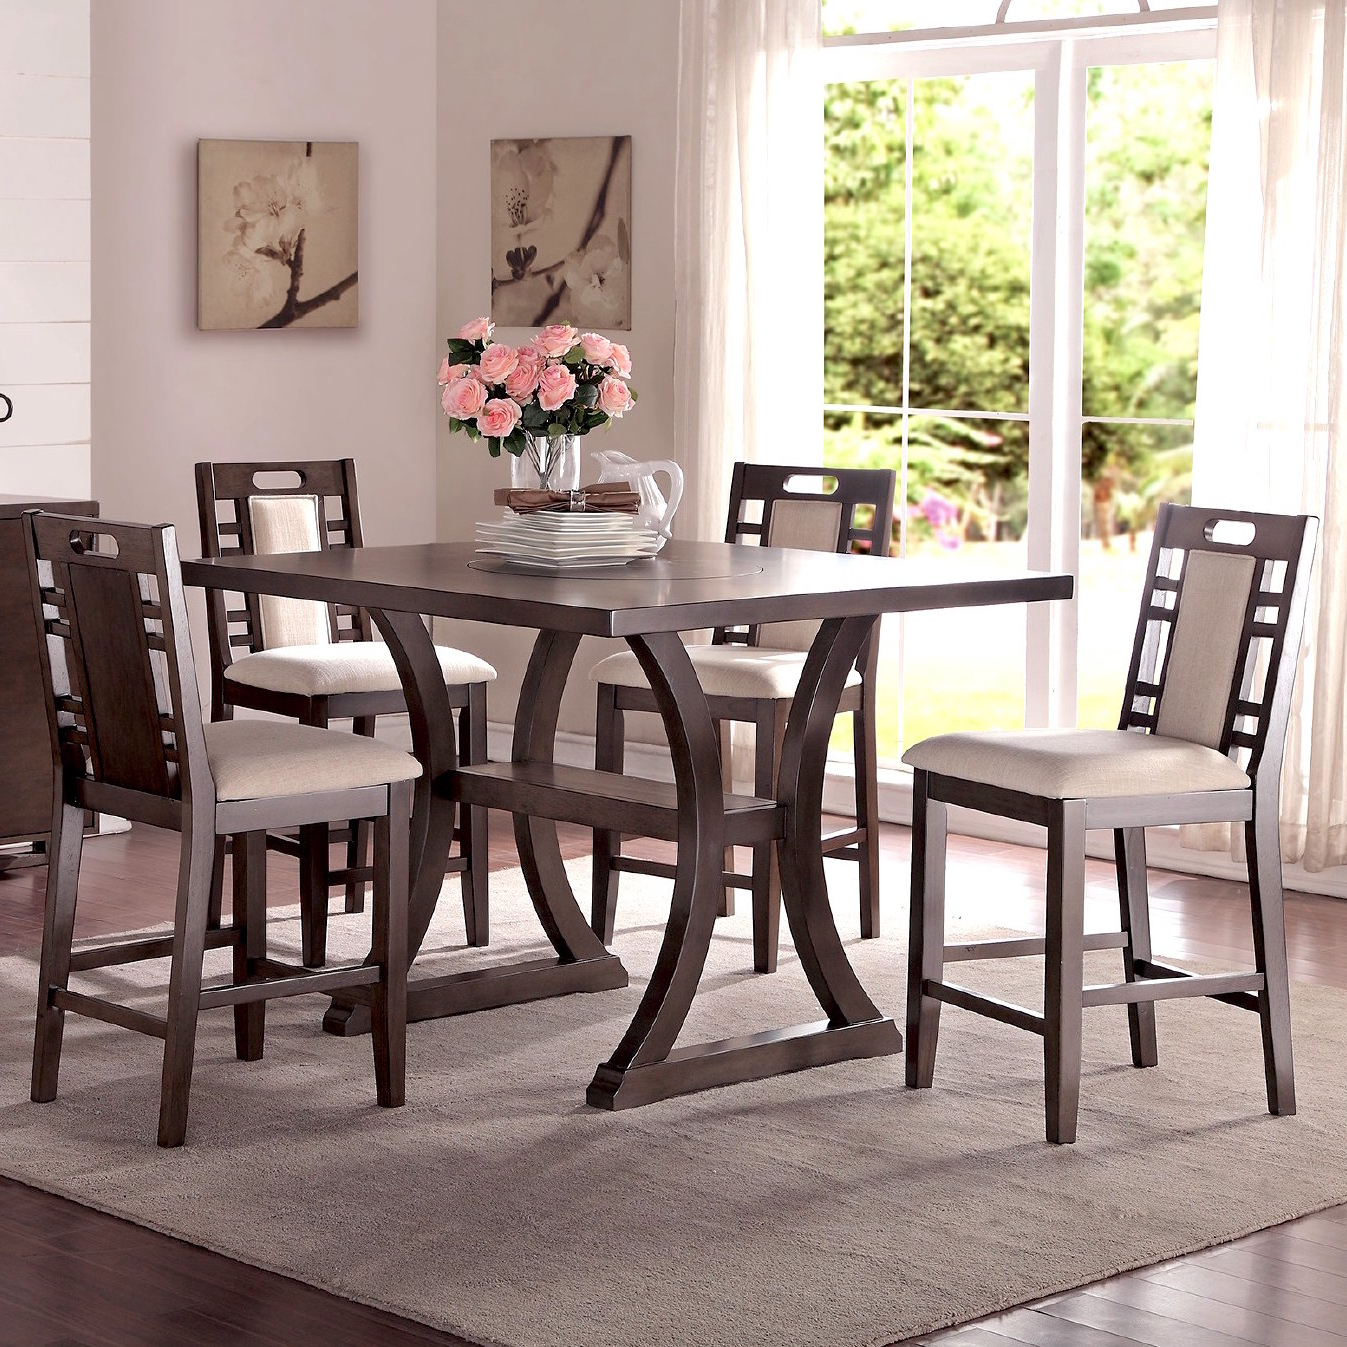 Infini Furnishings Adele 5 Piece Counter Height Dining Set With Regard To Well Liked Calla 5 Piece Dining Sets (Gallery 15 of 20)